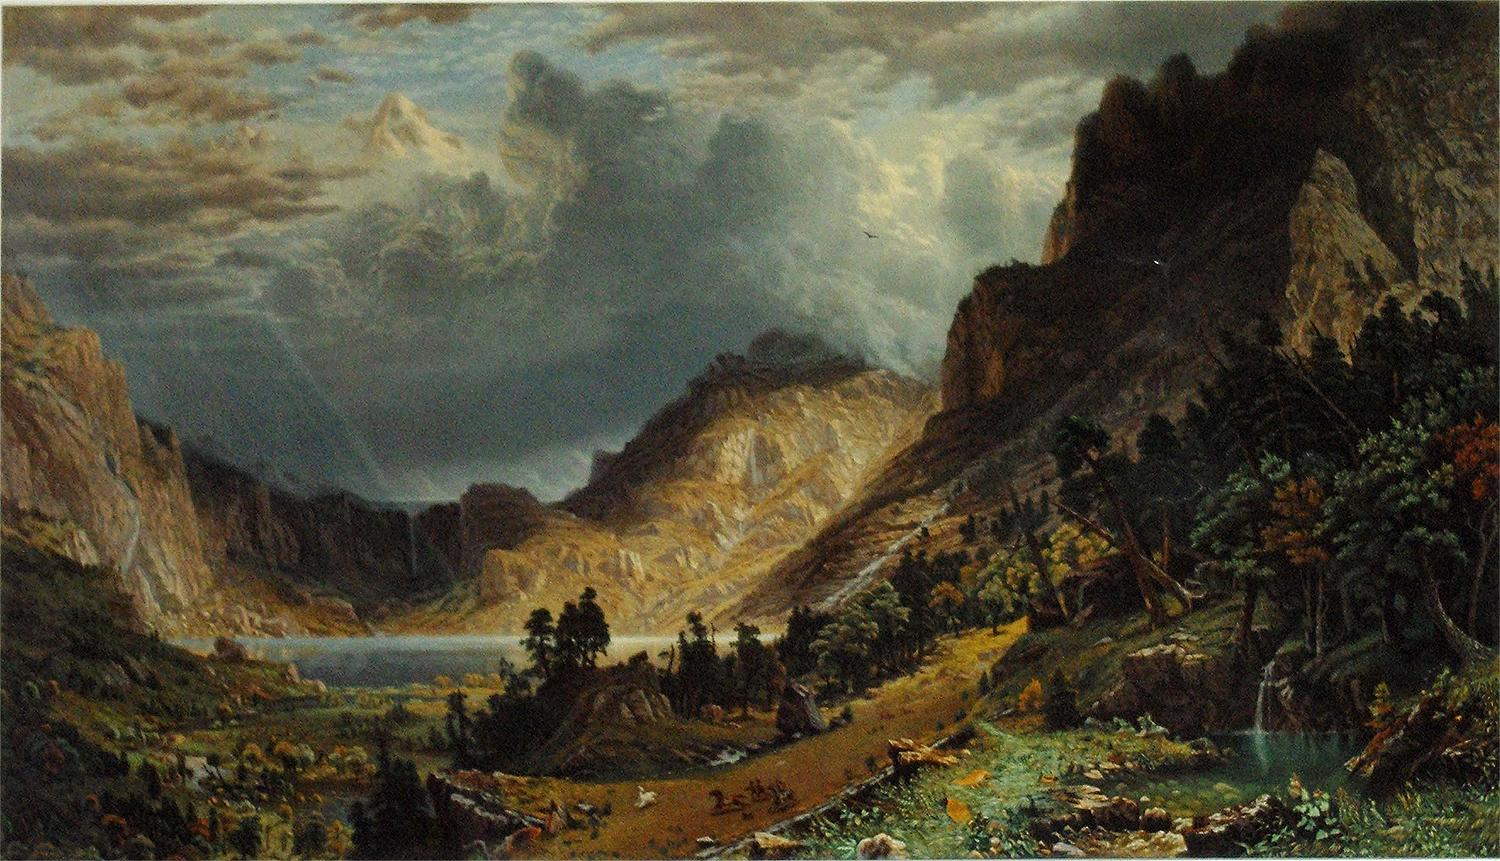 Storm in the Rocky Mountains, Mt. Rosalie: Albert Bierstadt (1830-1902)